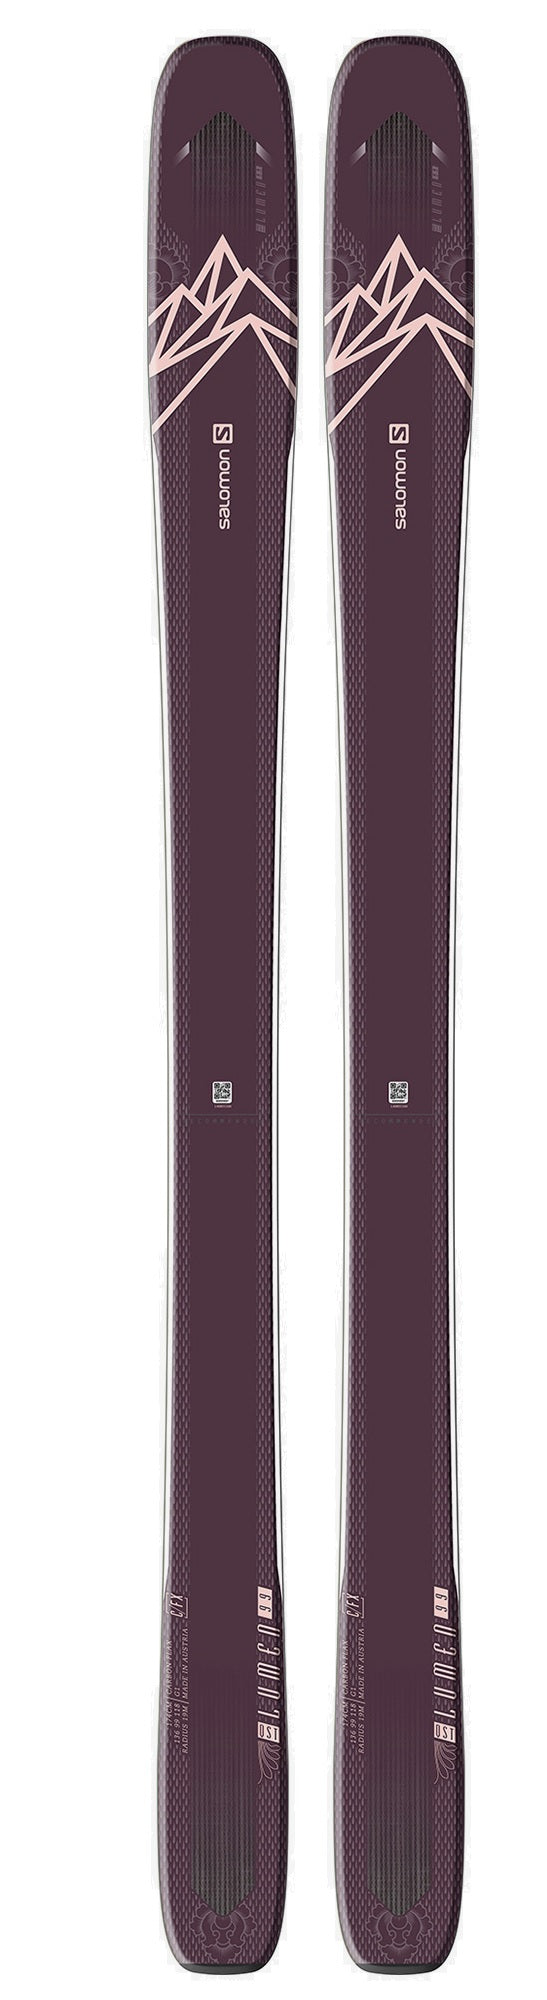 2021 Salomon QST Lumen 99 ladies snow skis - ProSkiGuy your Hometown Ski Shop on the web